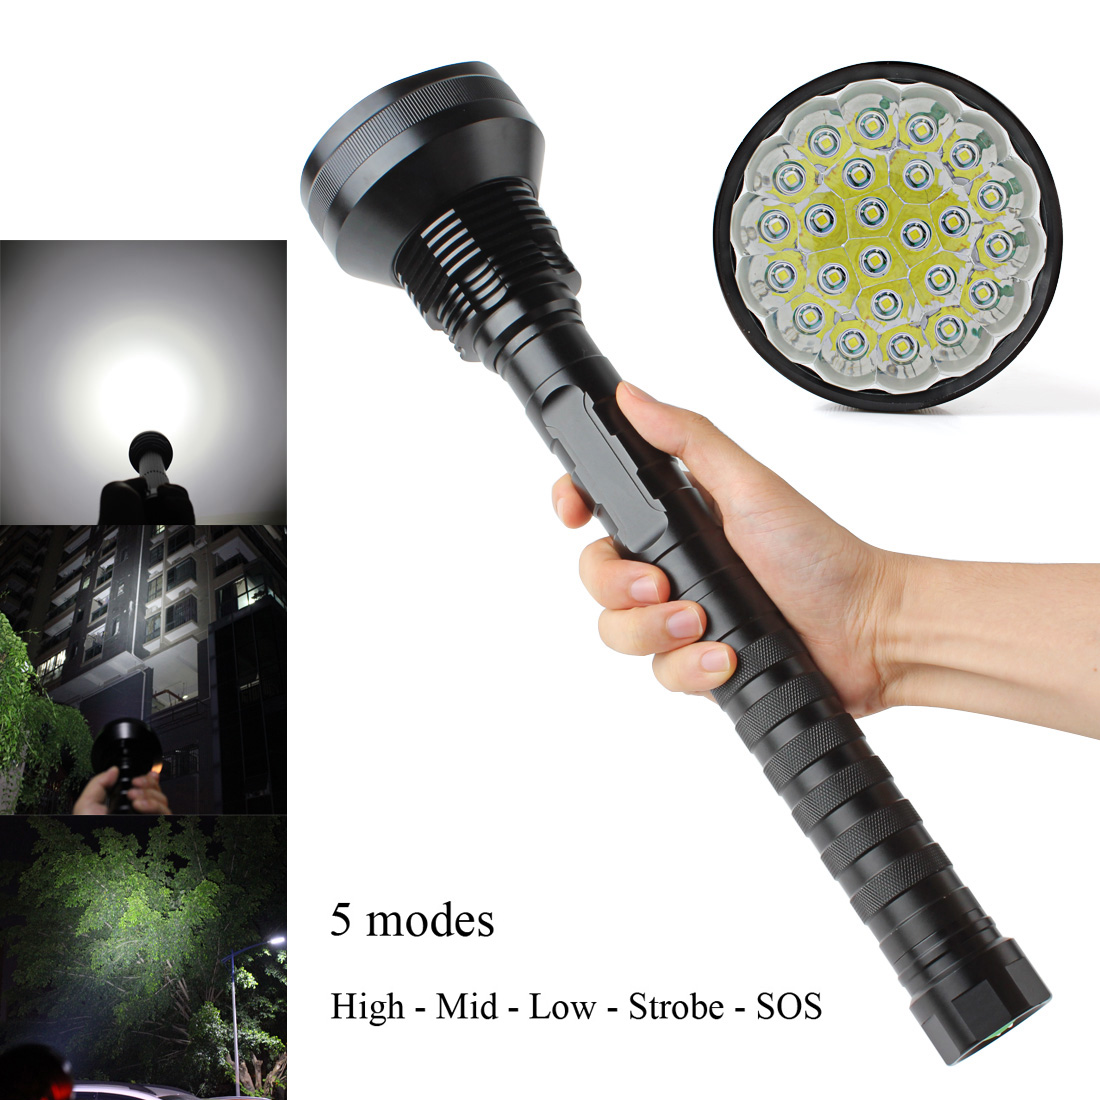 LED Flashlight NEW CREE XML-T6 21/24 LED 32000 LM High Power Glare T6 LED Torch Floodlight Accent Light Camping Lamp outdoor camping emergency light solar powered led flashlight self defense glare flashlight hammer torch light with power bank